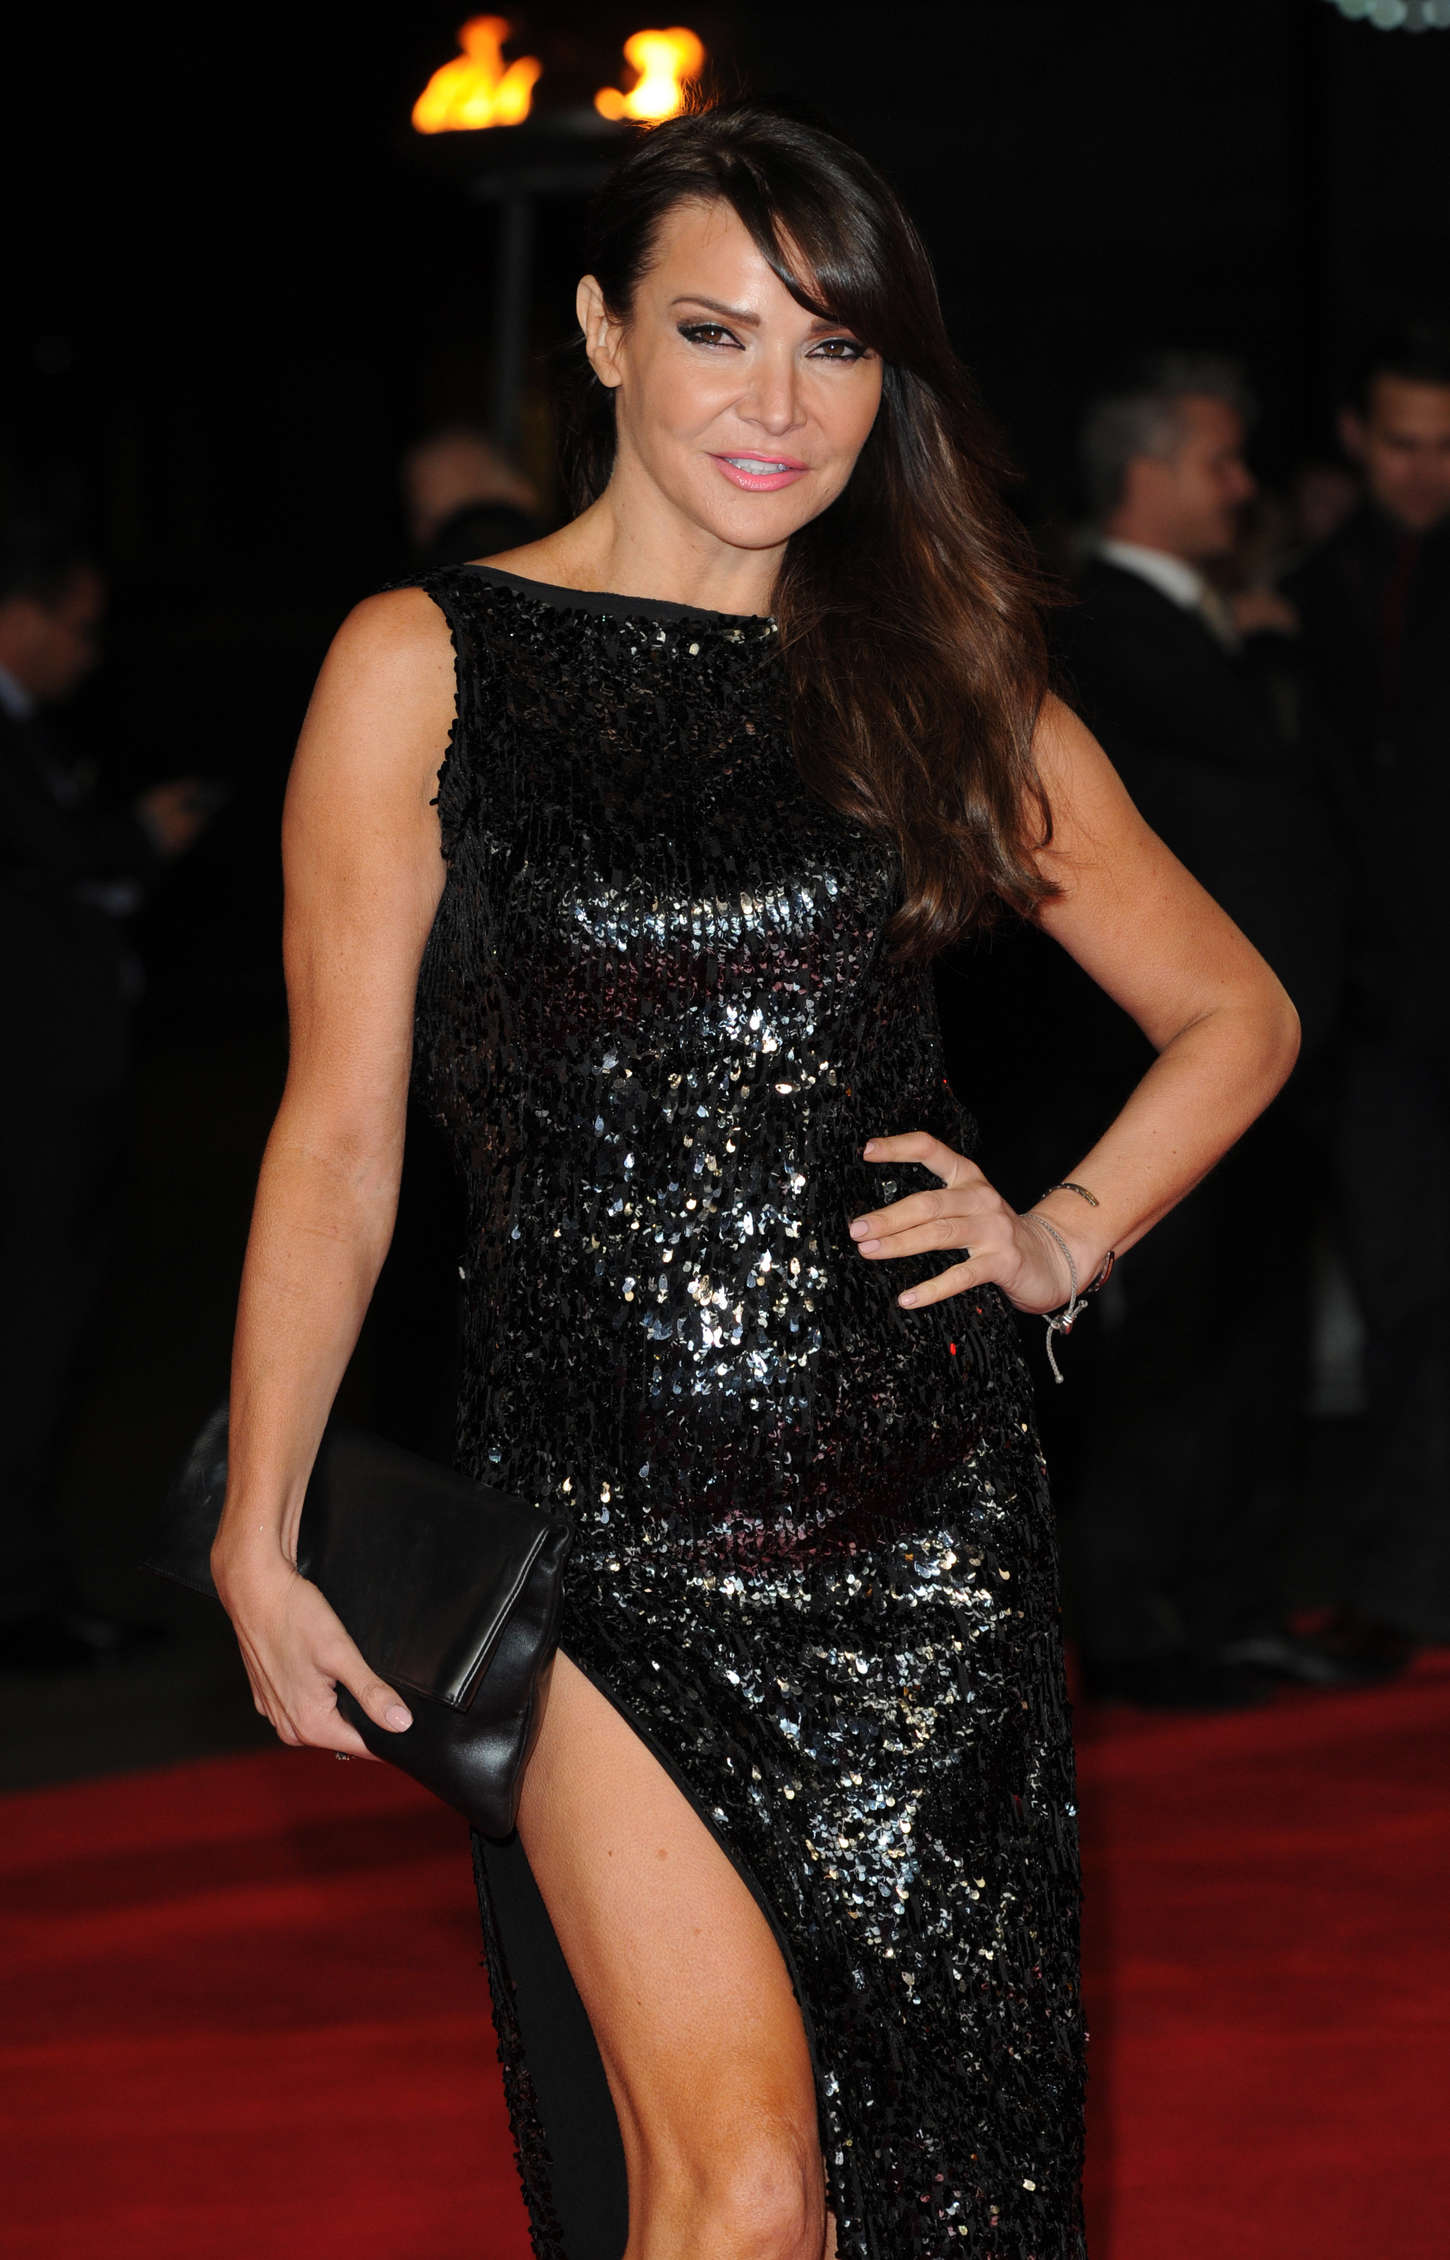 Lizzie Cundy at Premiere of The Hunger Games Mockingjay Part in London